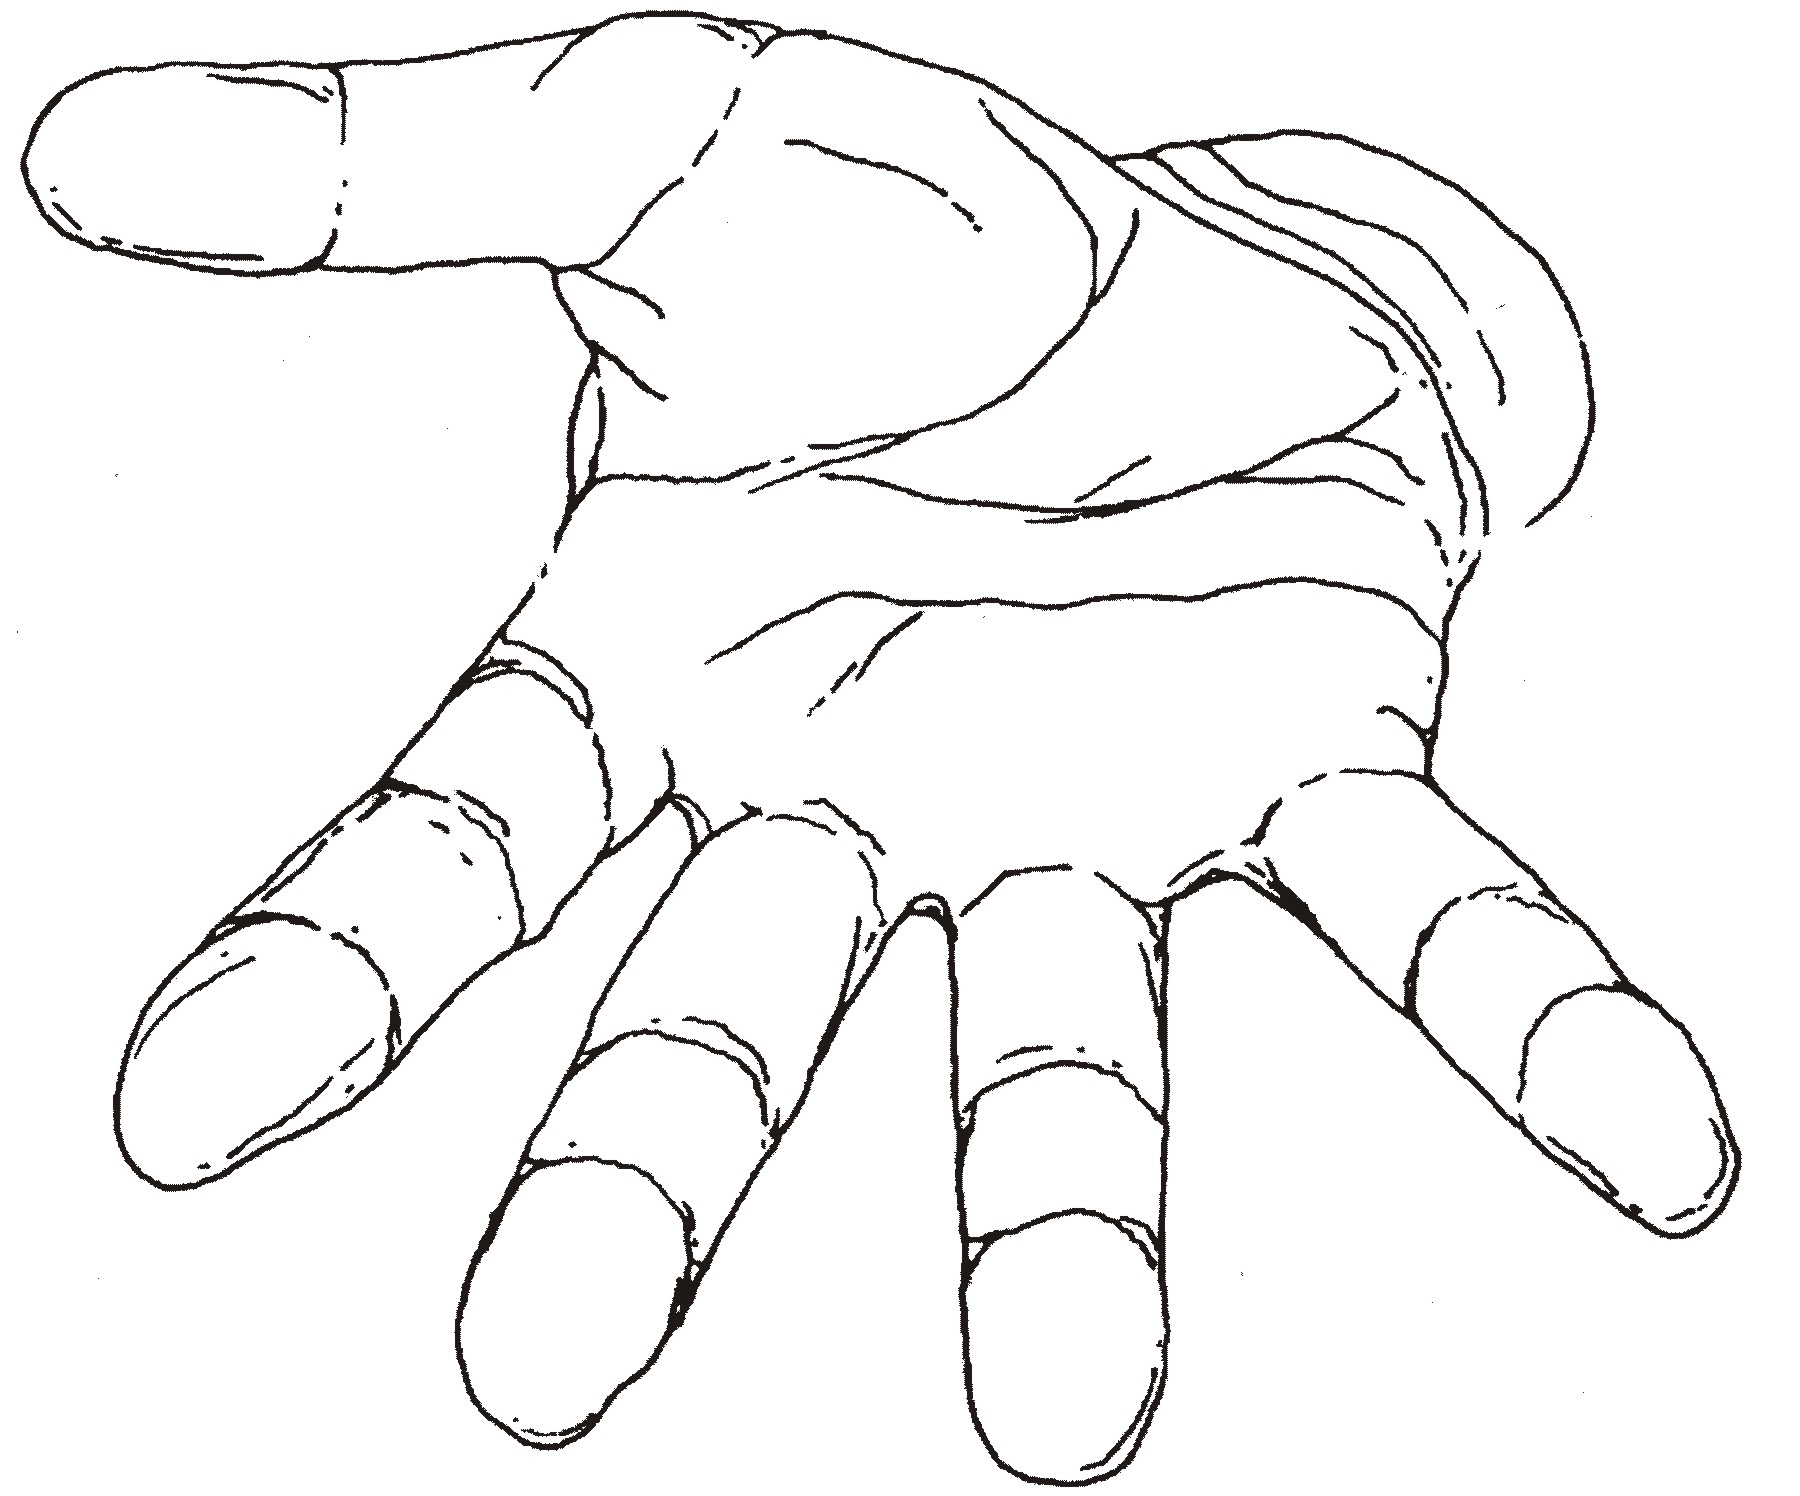 Jpg To Line Drawing : Hand outline template printable clipart best